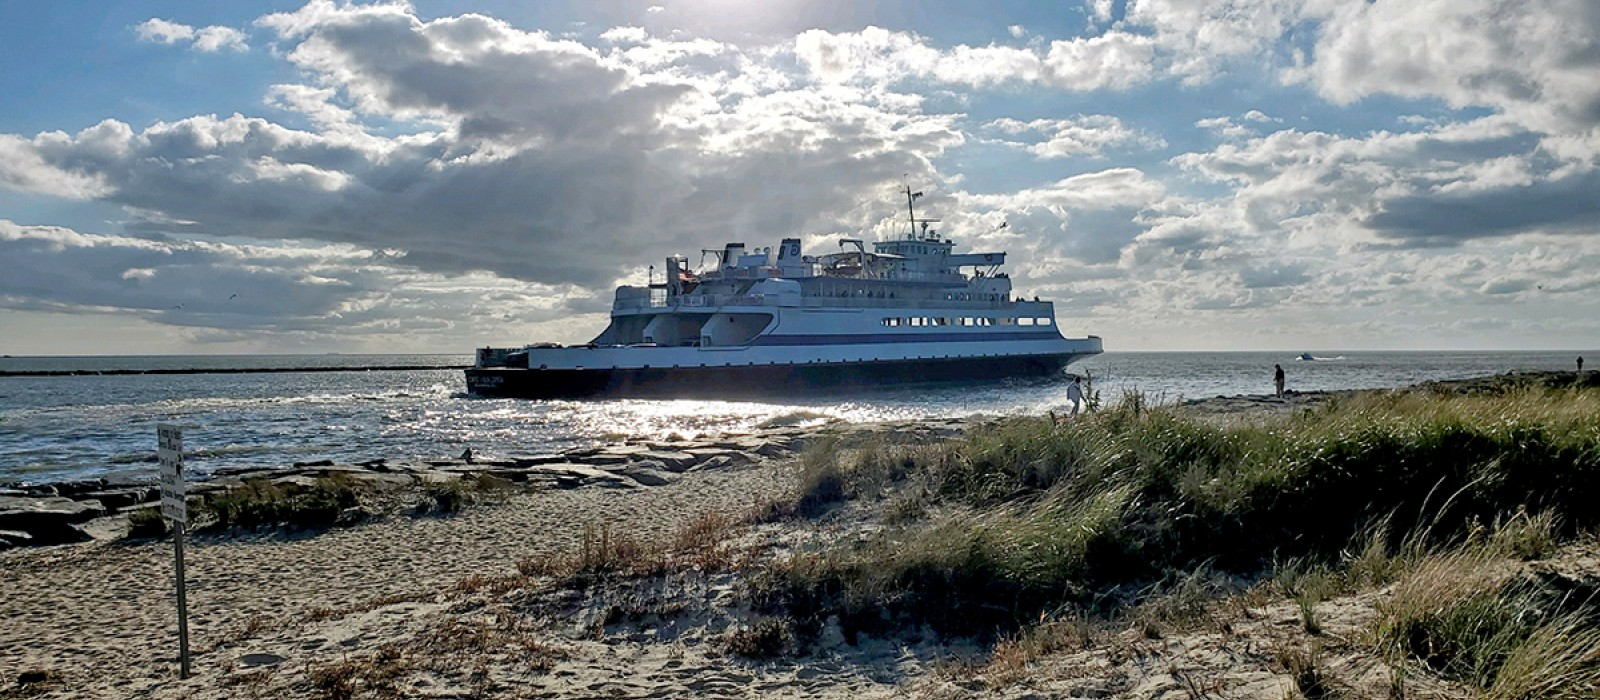 The Cape May-Lewes Ferry departs from the Cape May terminal and sails into the Delaware Bay on a sunny fall afternoon